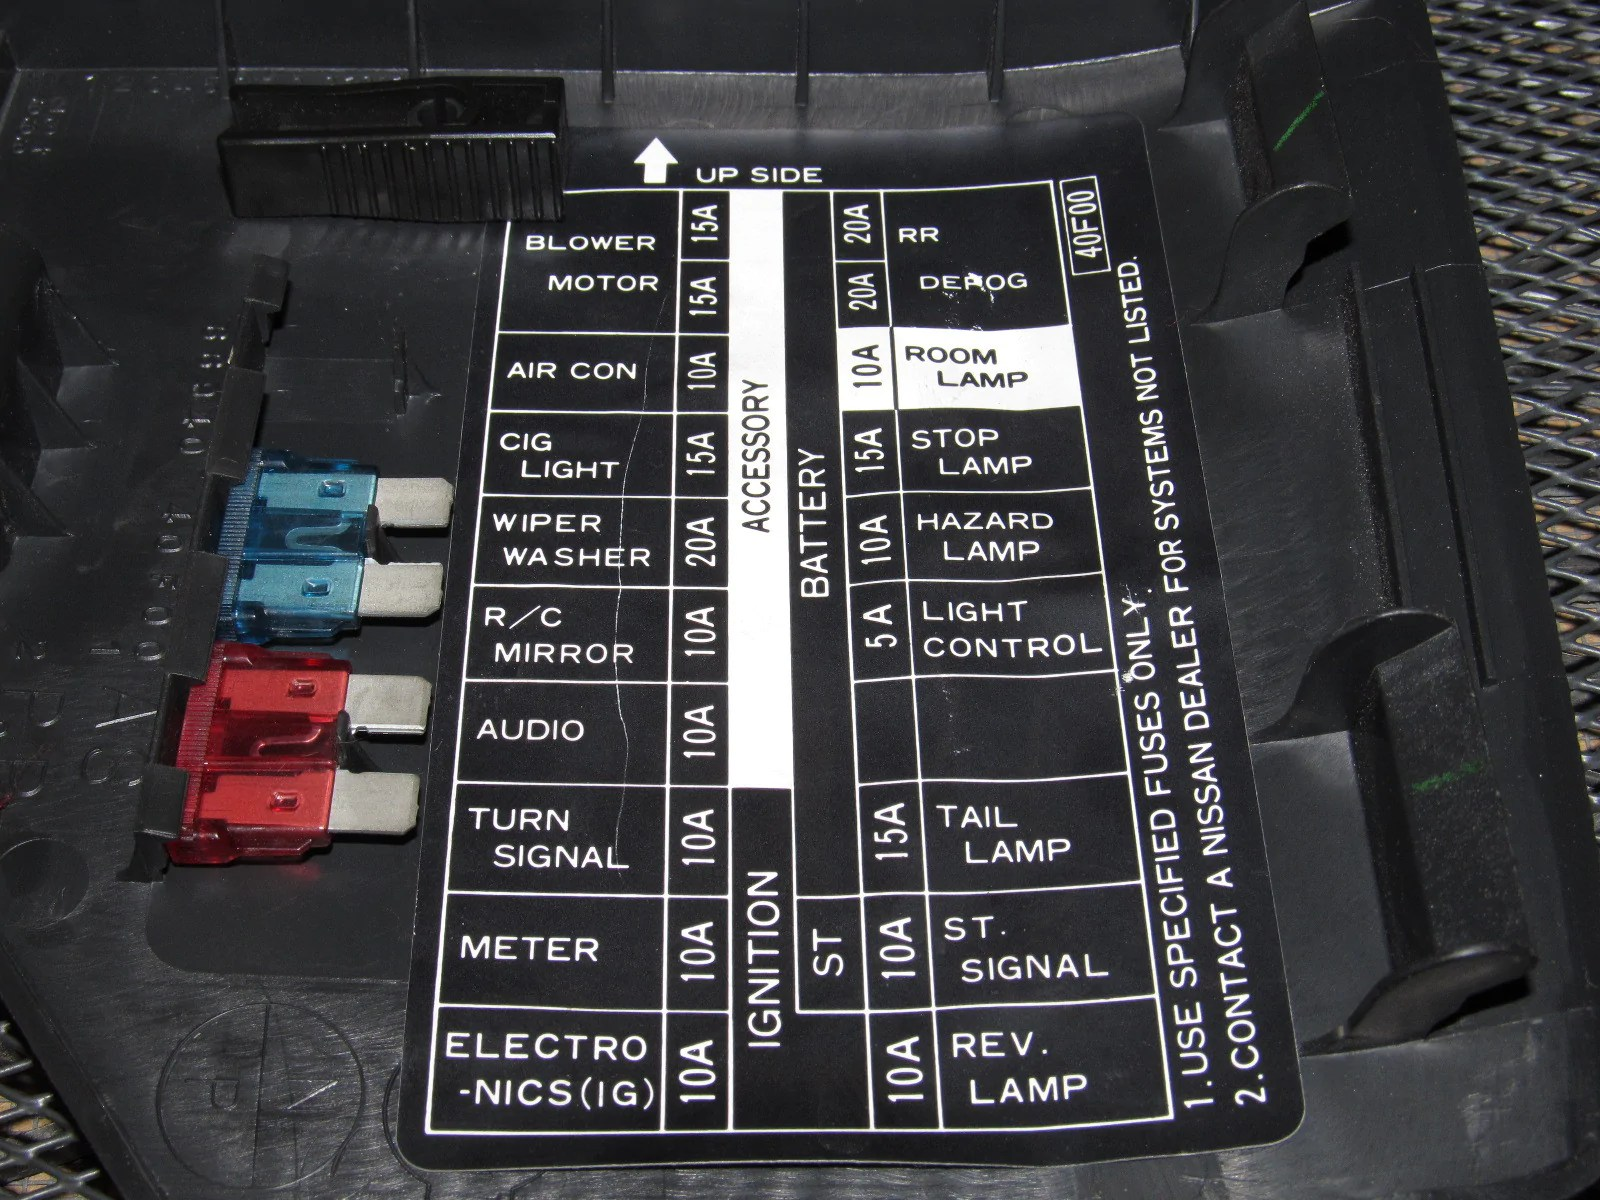 s13 fuse box diagram 240sx fuse box diagram wiring diagram 1995 240sx fuse box diagram 240sx fuse box diagram